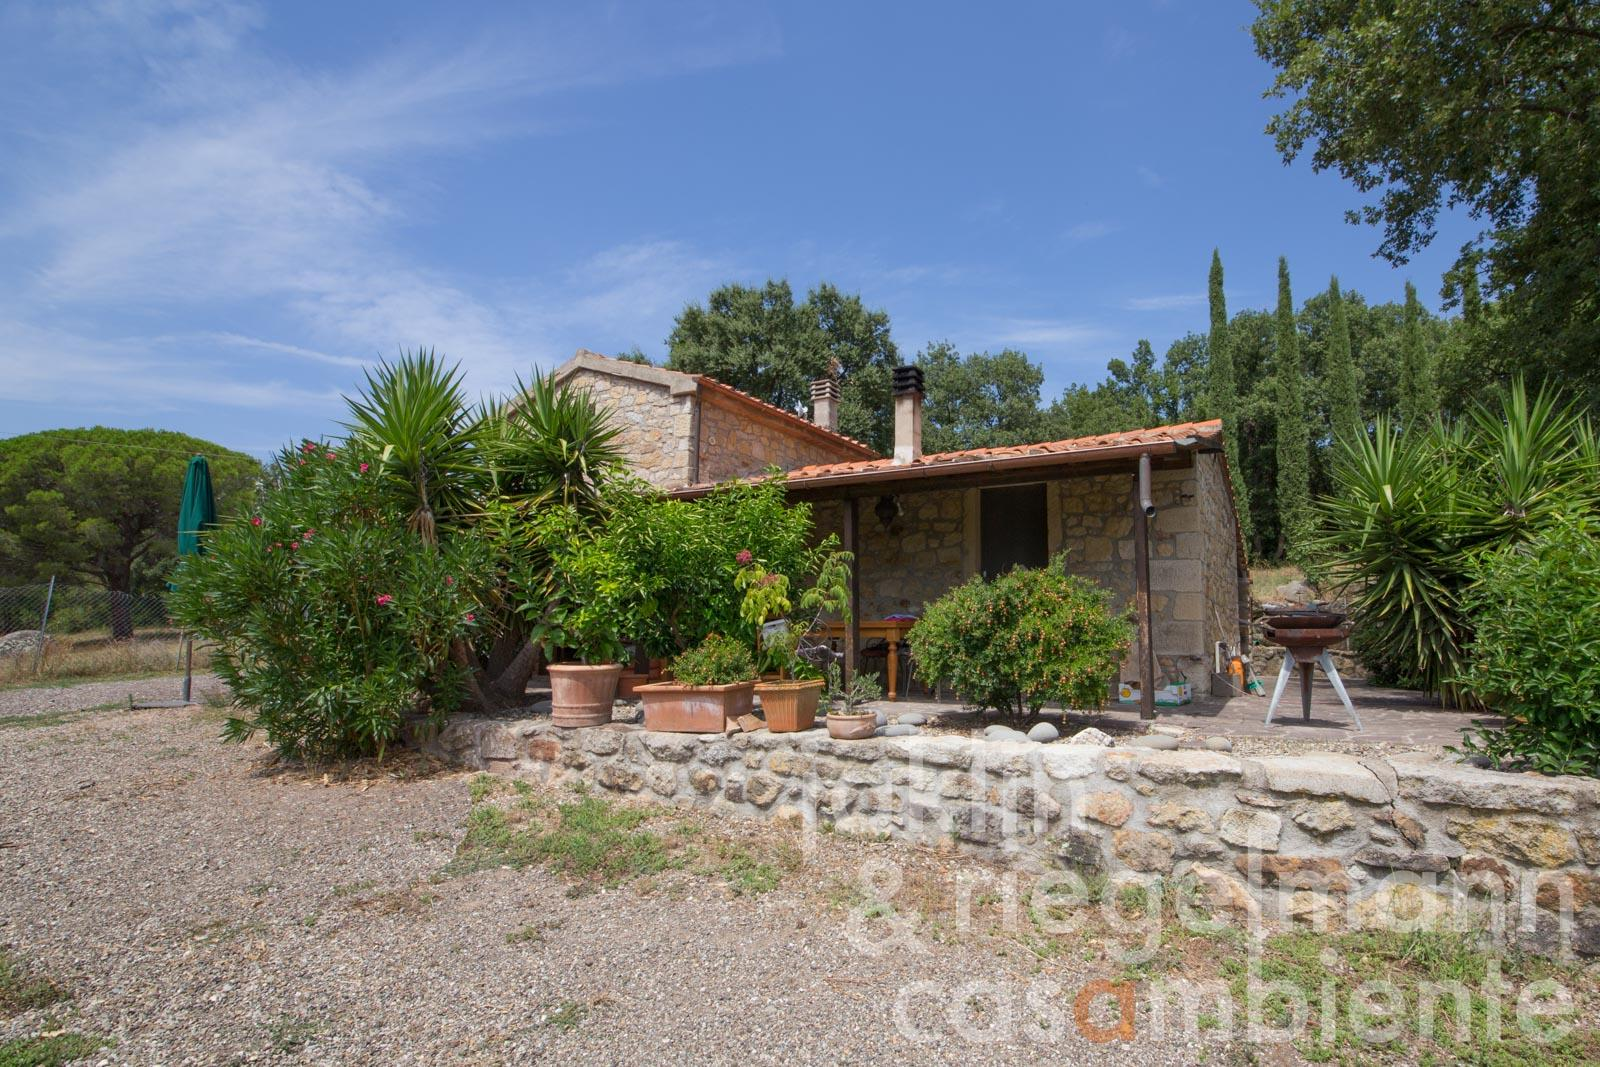 Property in wonderful location of the Maremma with building volume, olive groves and pasture land